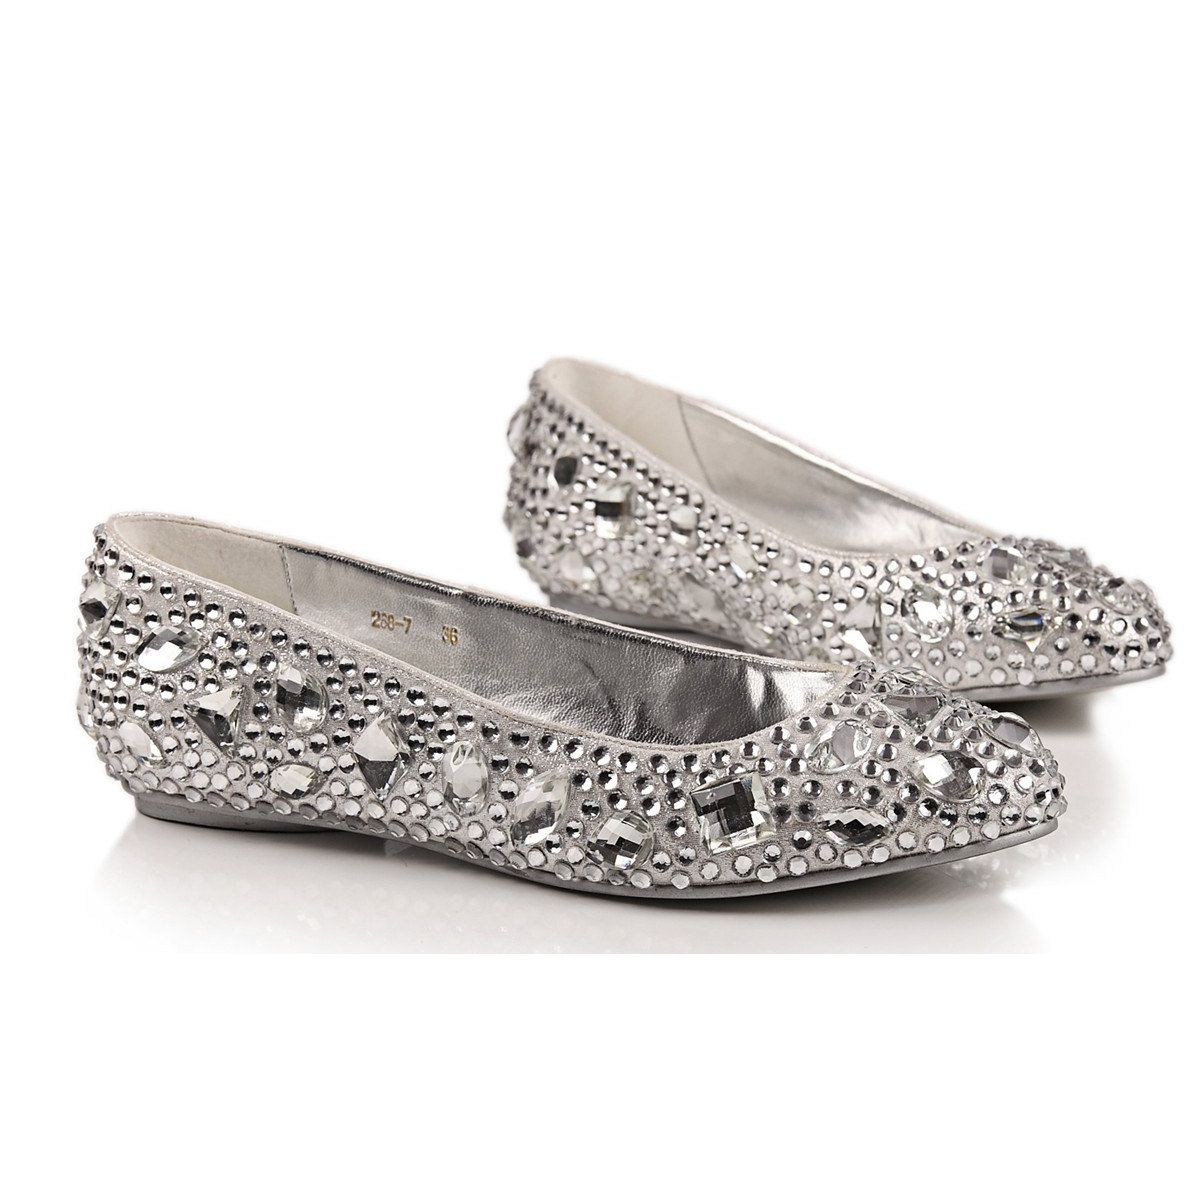 comfortable flats silver crystal shoes for wedding or daily use 11500 via etsy